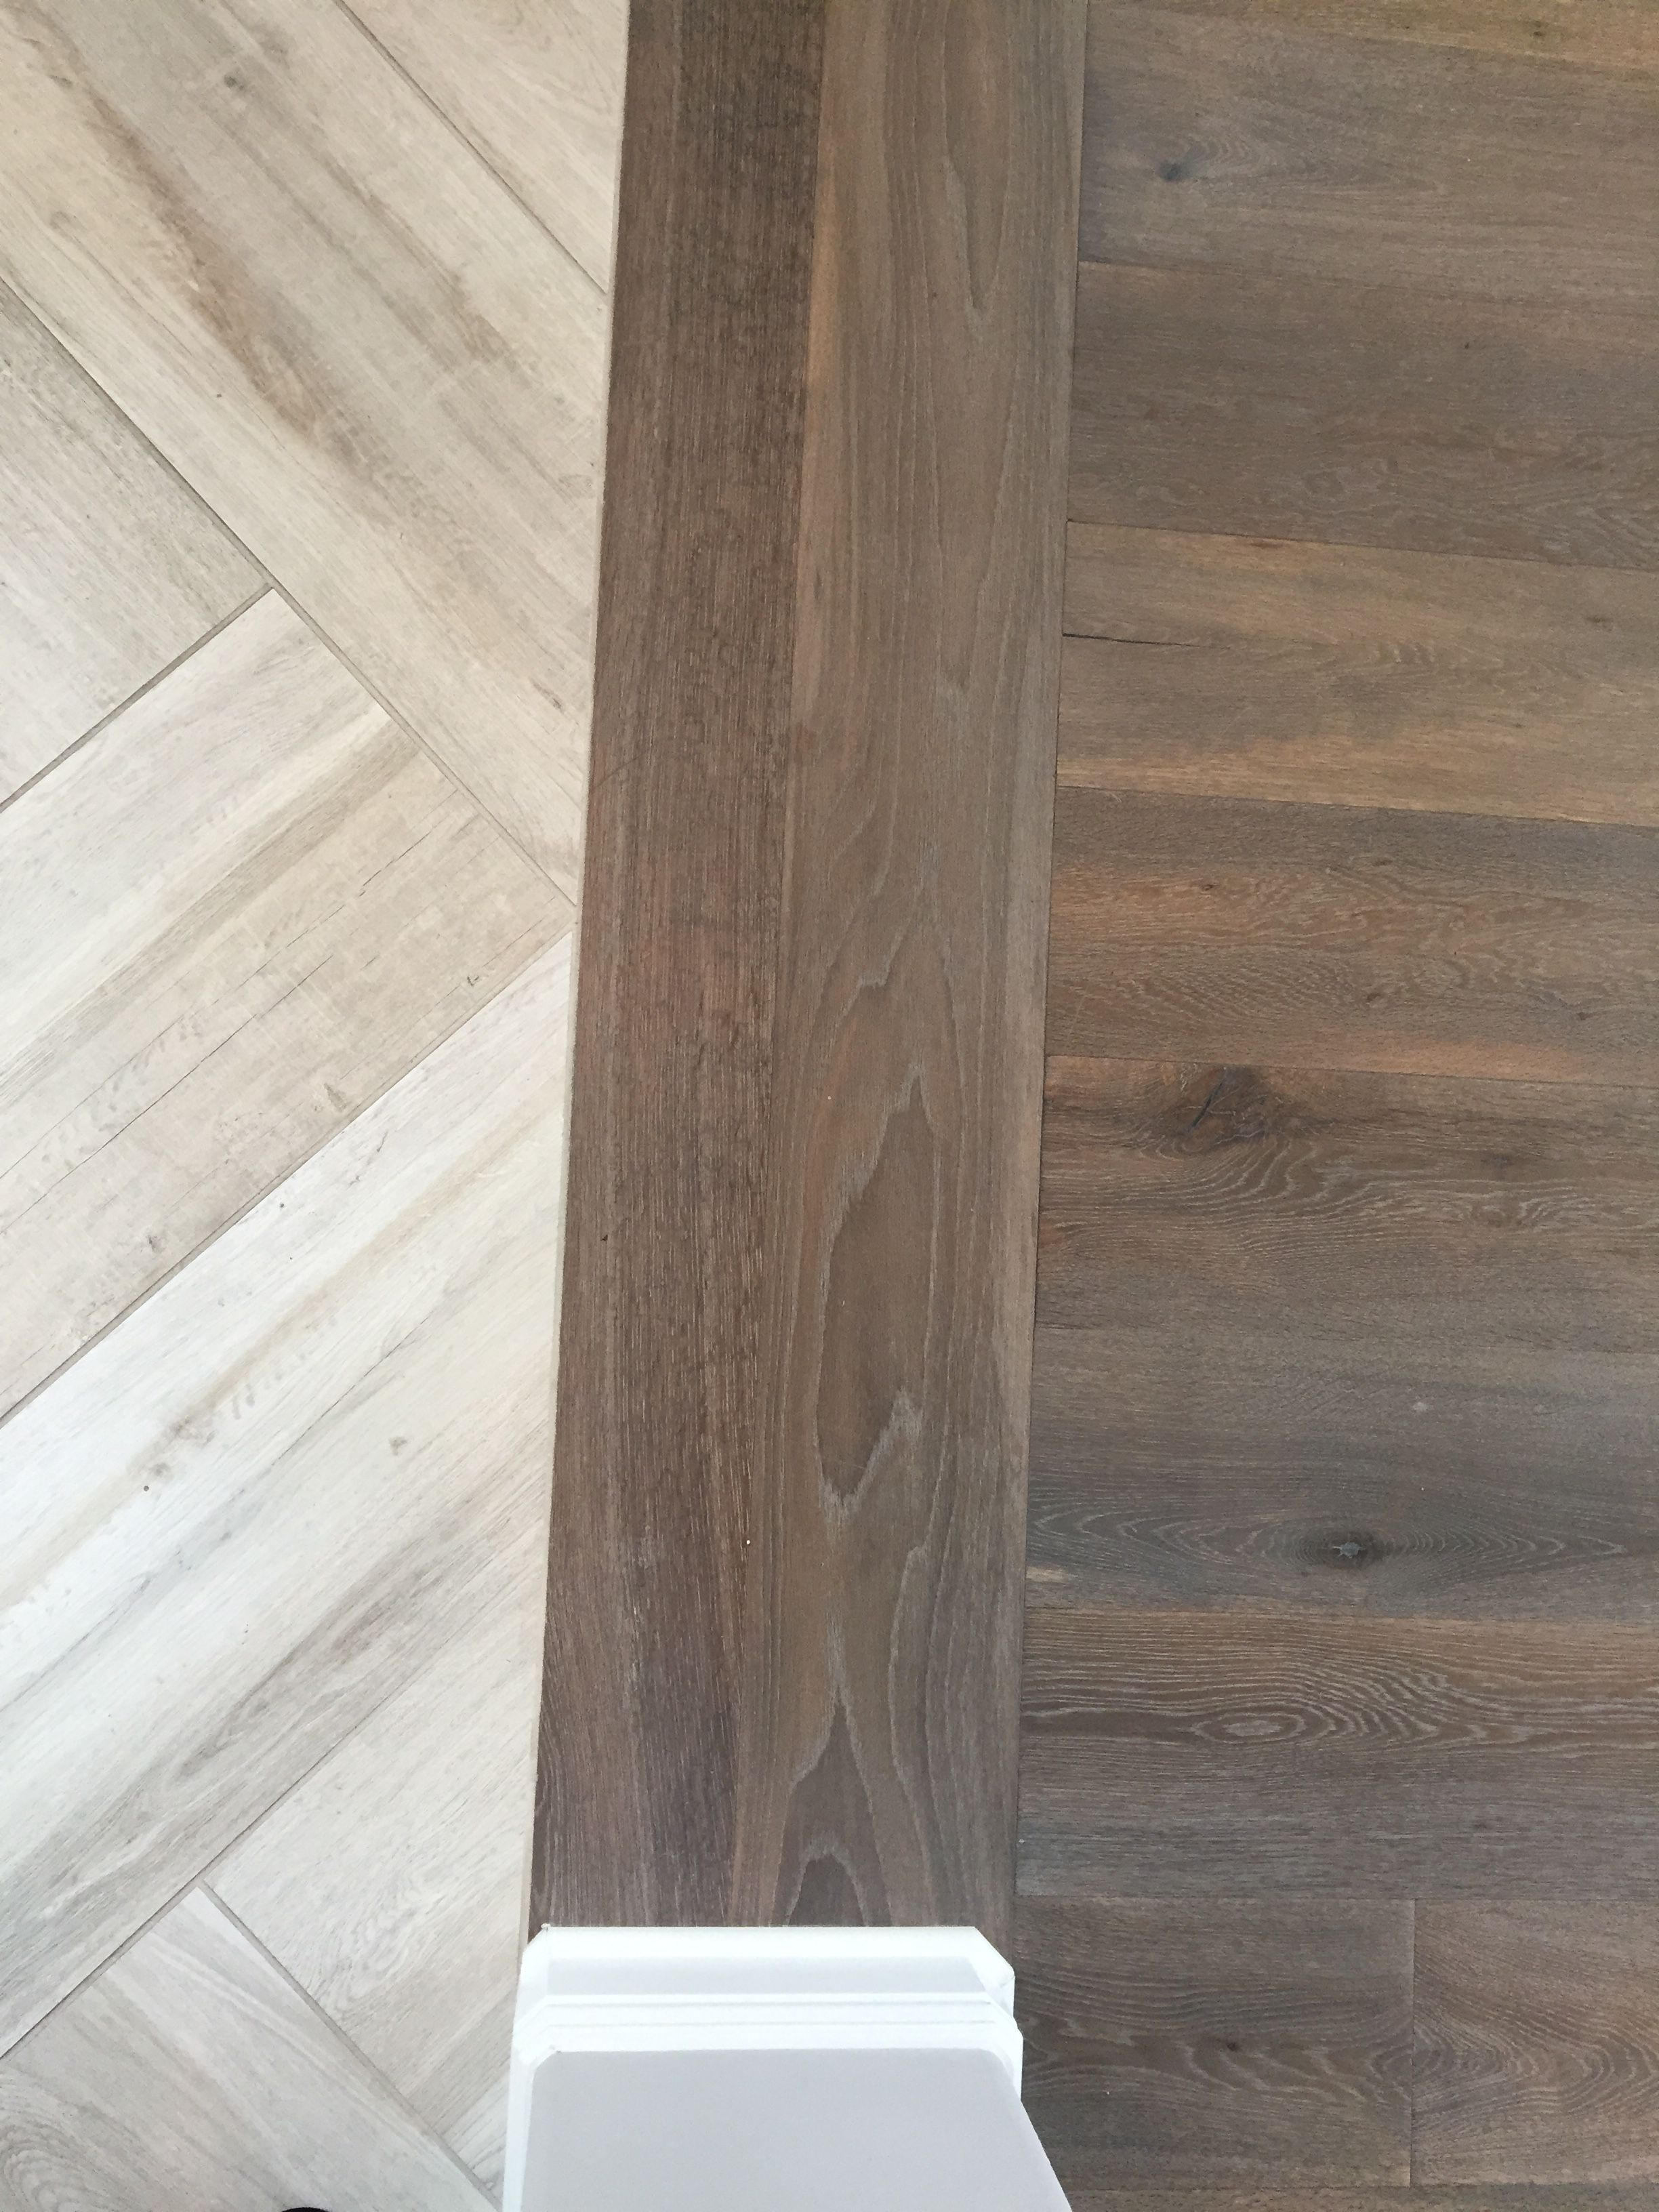 Floor transition laminate to herringbone tile pattern model lighter color wood though floor transition laminate to herringbone tile pattern jameslax Images